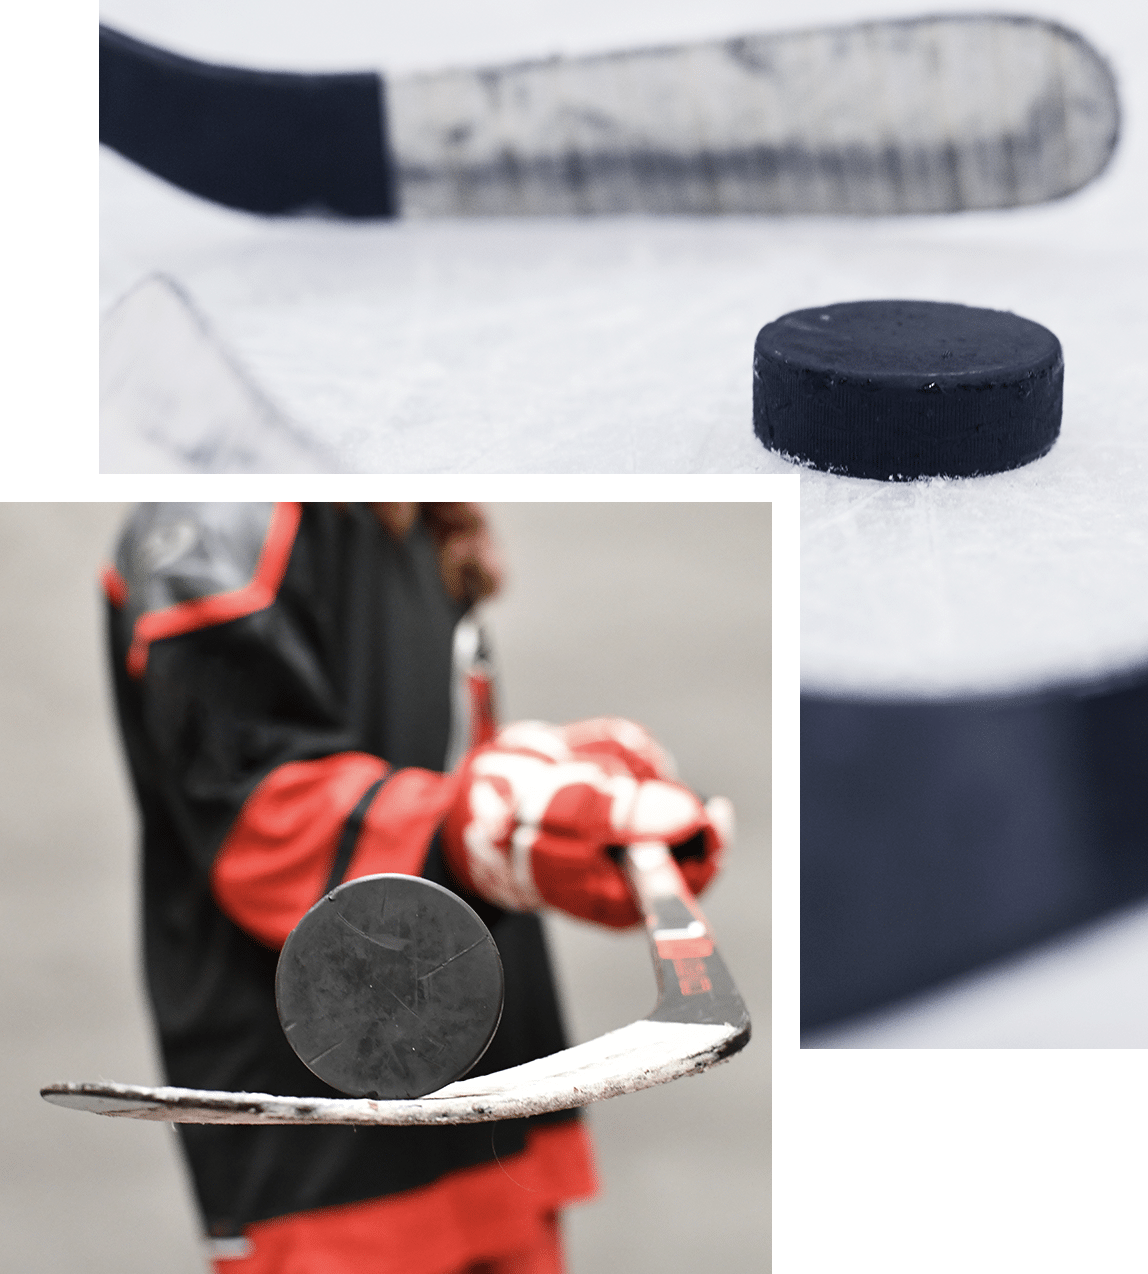 Stick and Puck